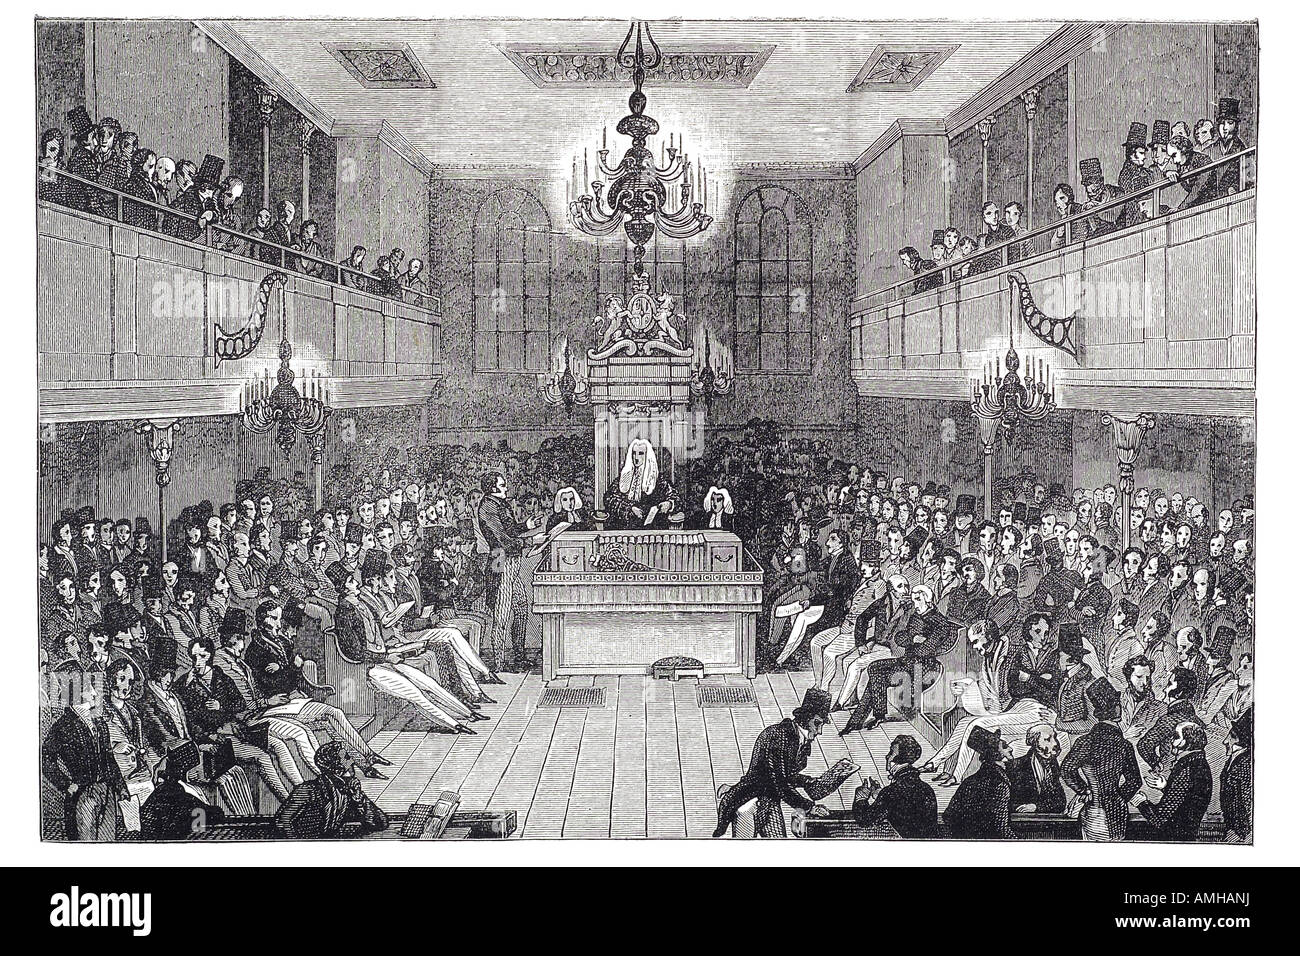 1834 house of commons elected lower house bicameral parliament Palace democratically elected Westminster member - Stock Image